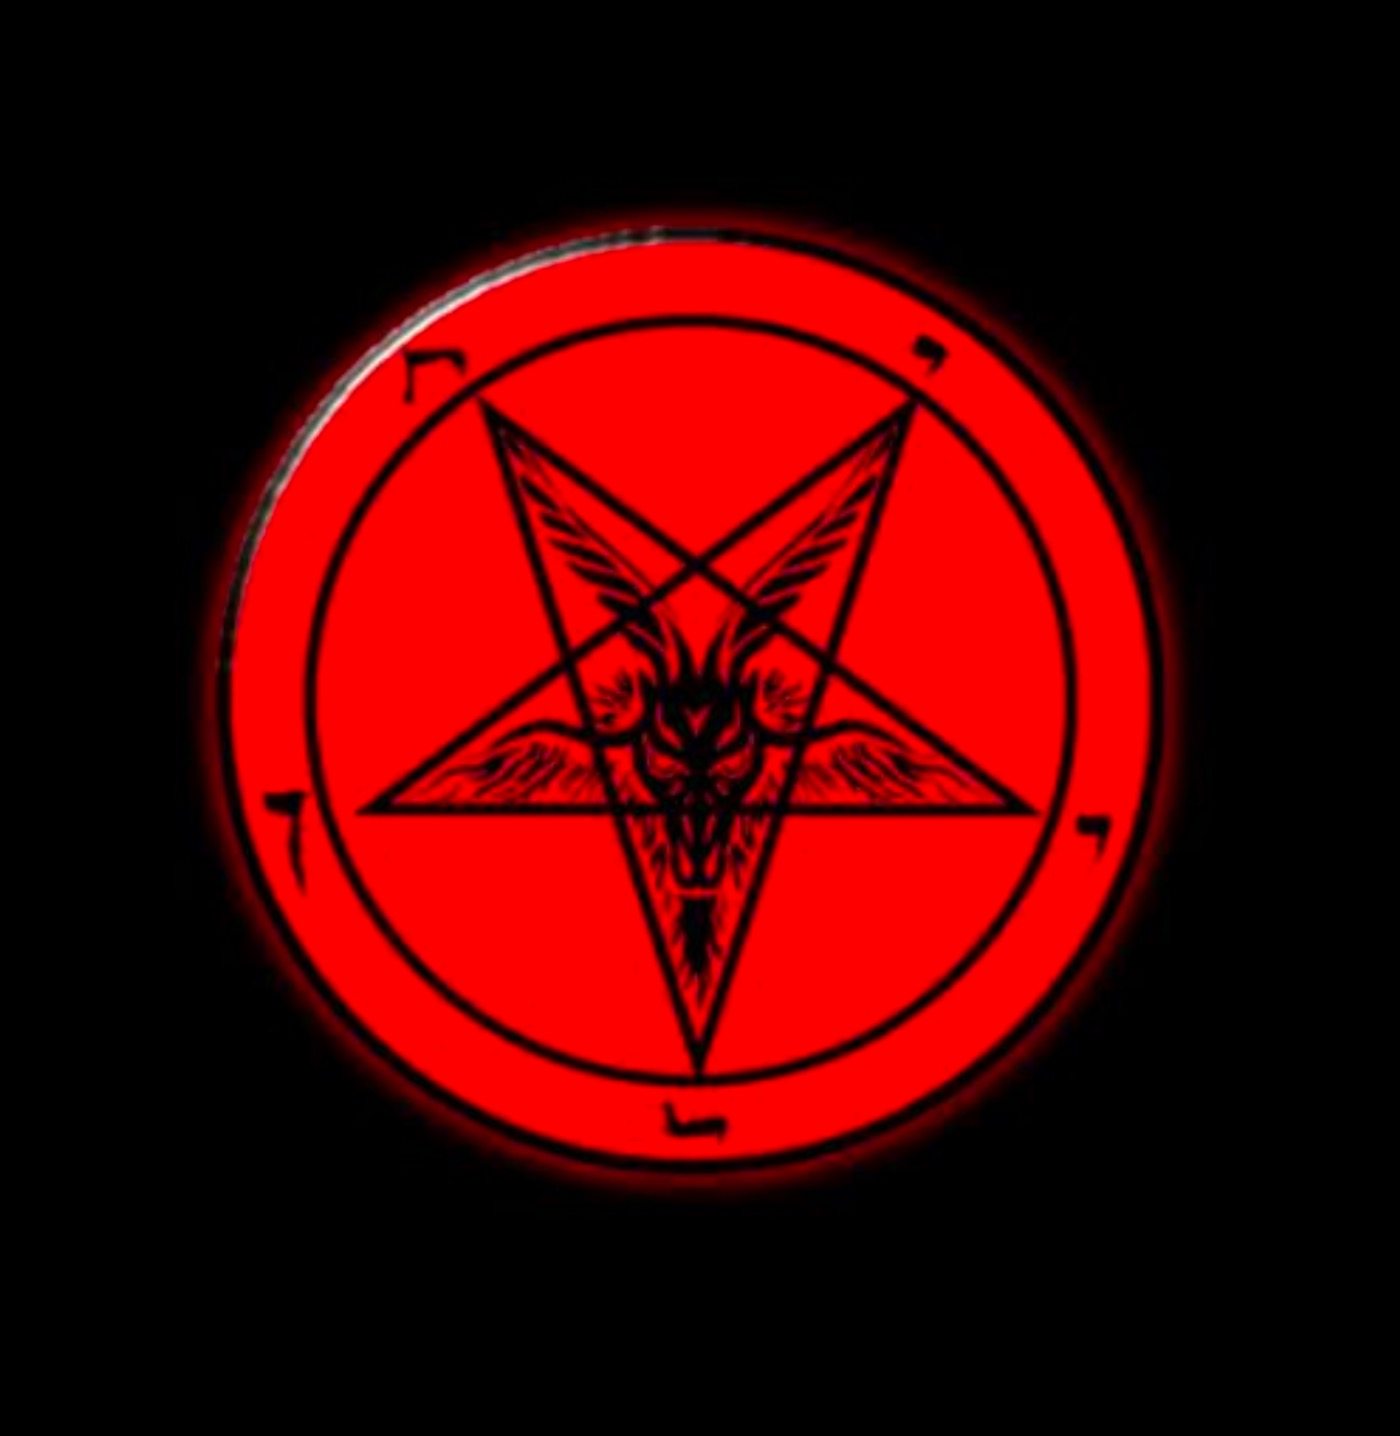 Memorial to Satan, Satanism and Devil Worship Video